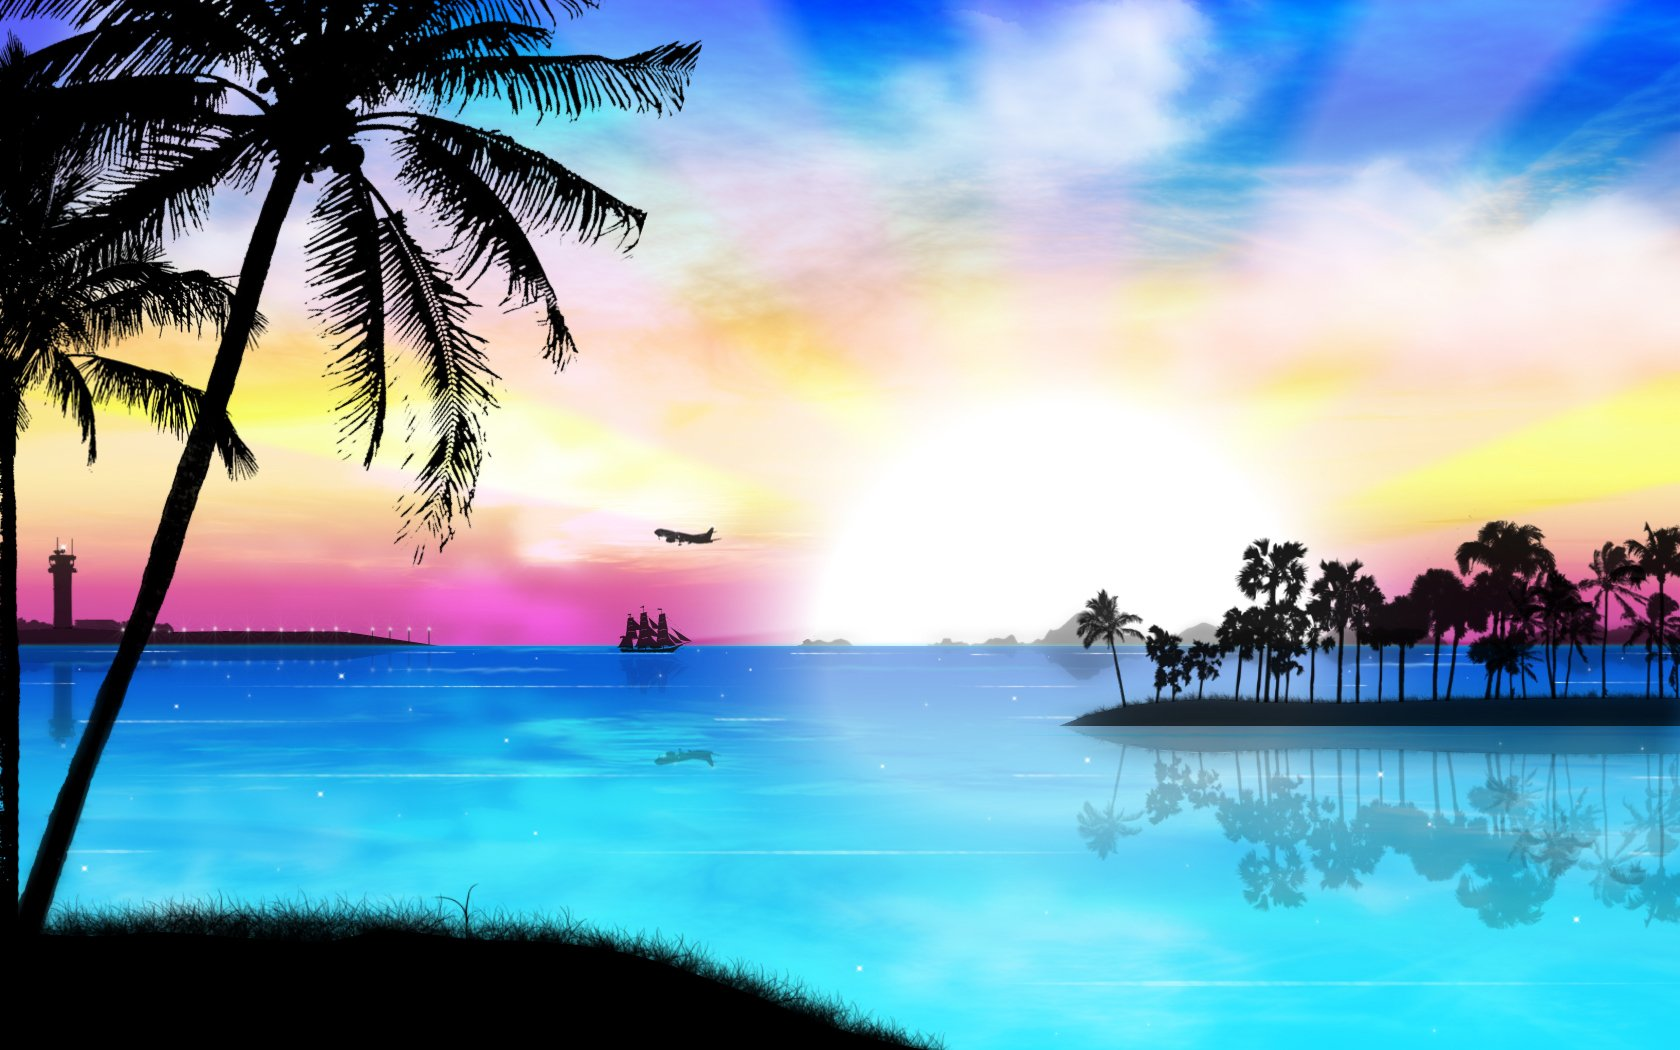 HD Tropical Wallpaper 1680x1050 - WallpaperSafari